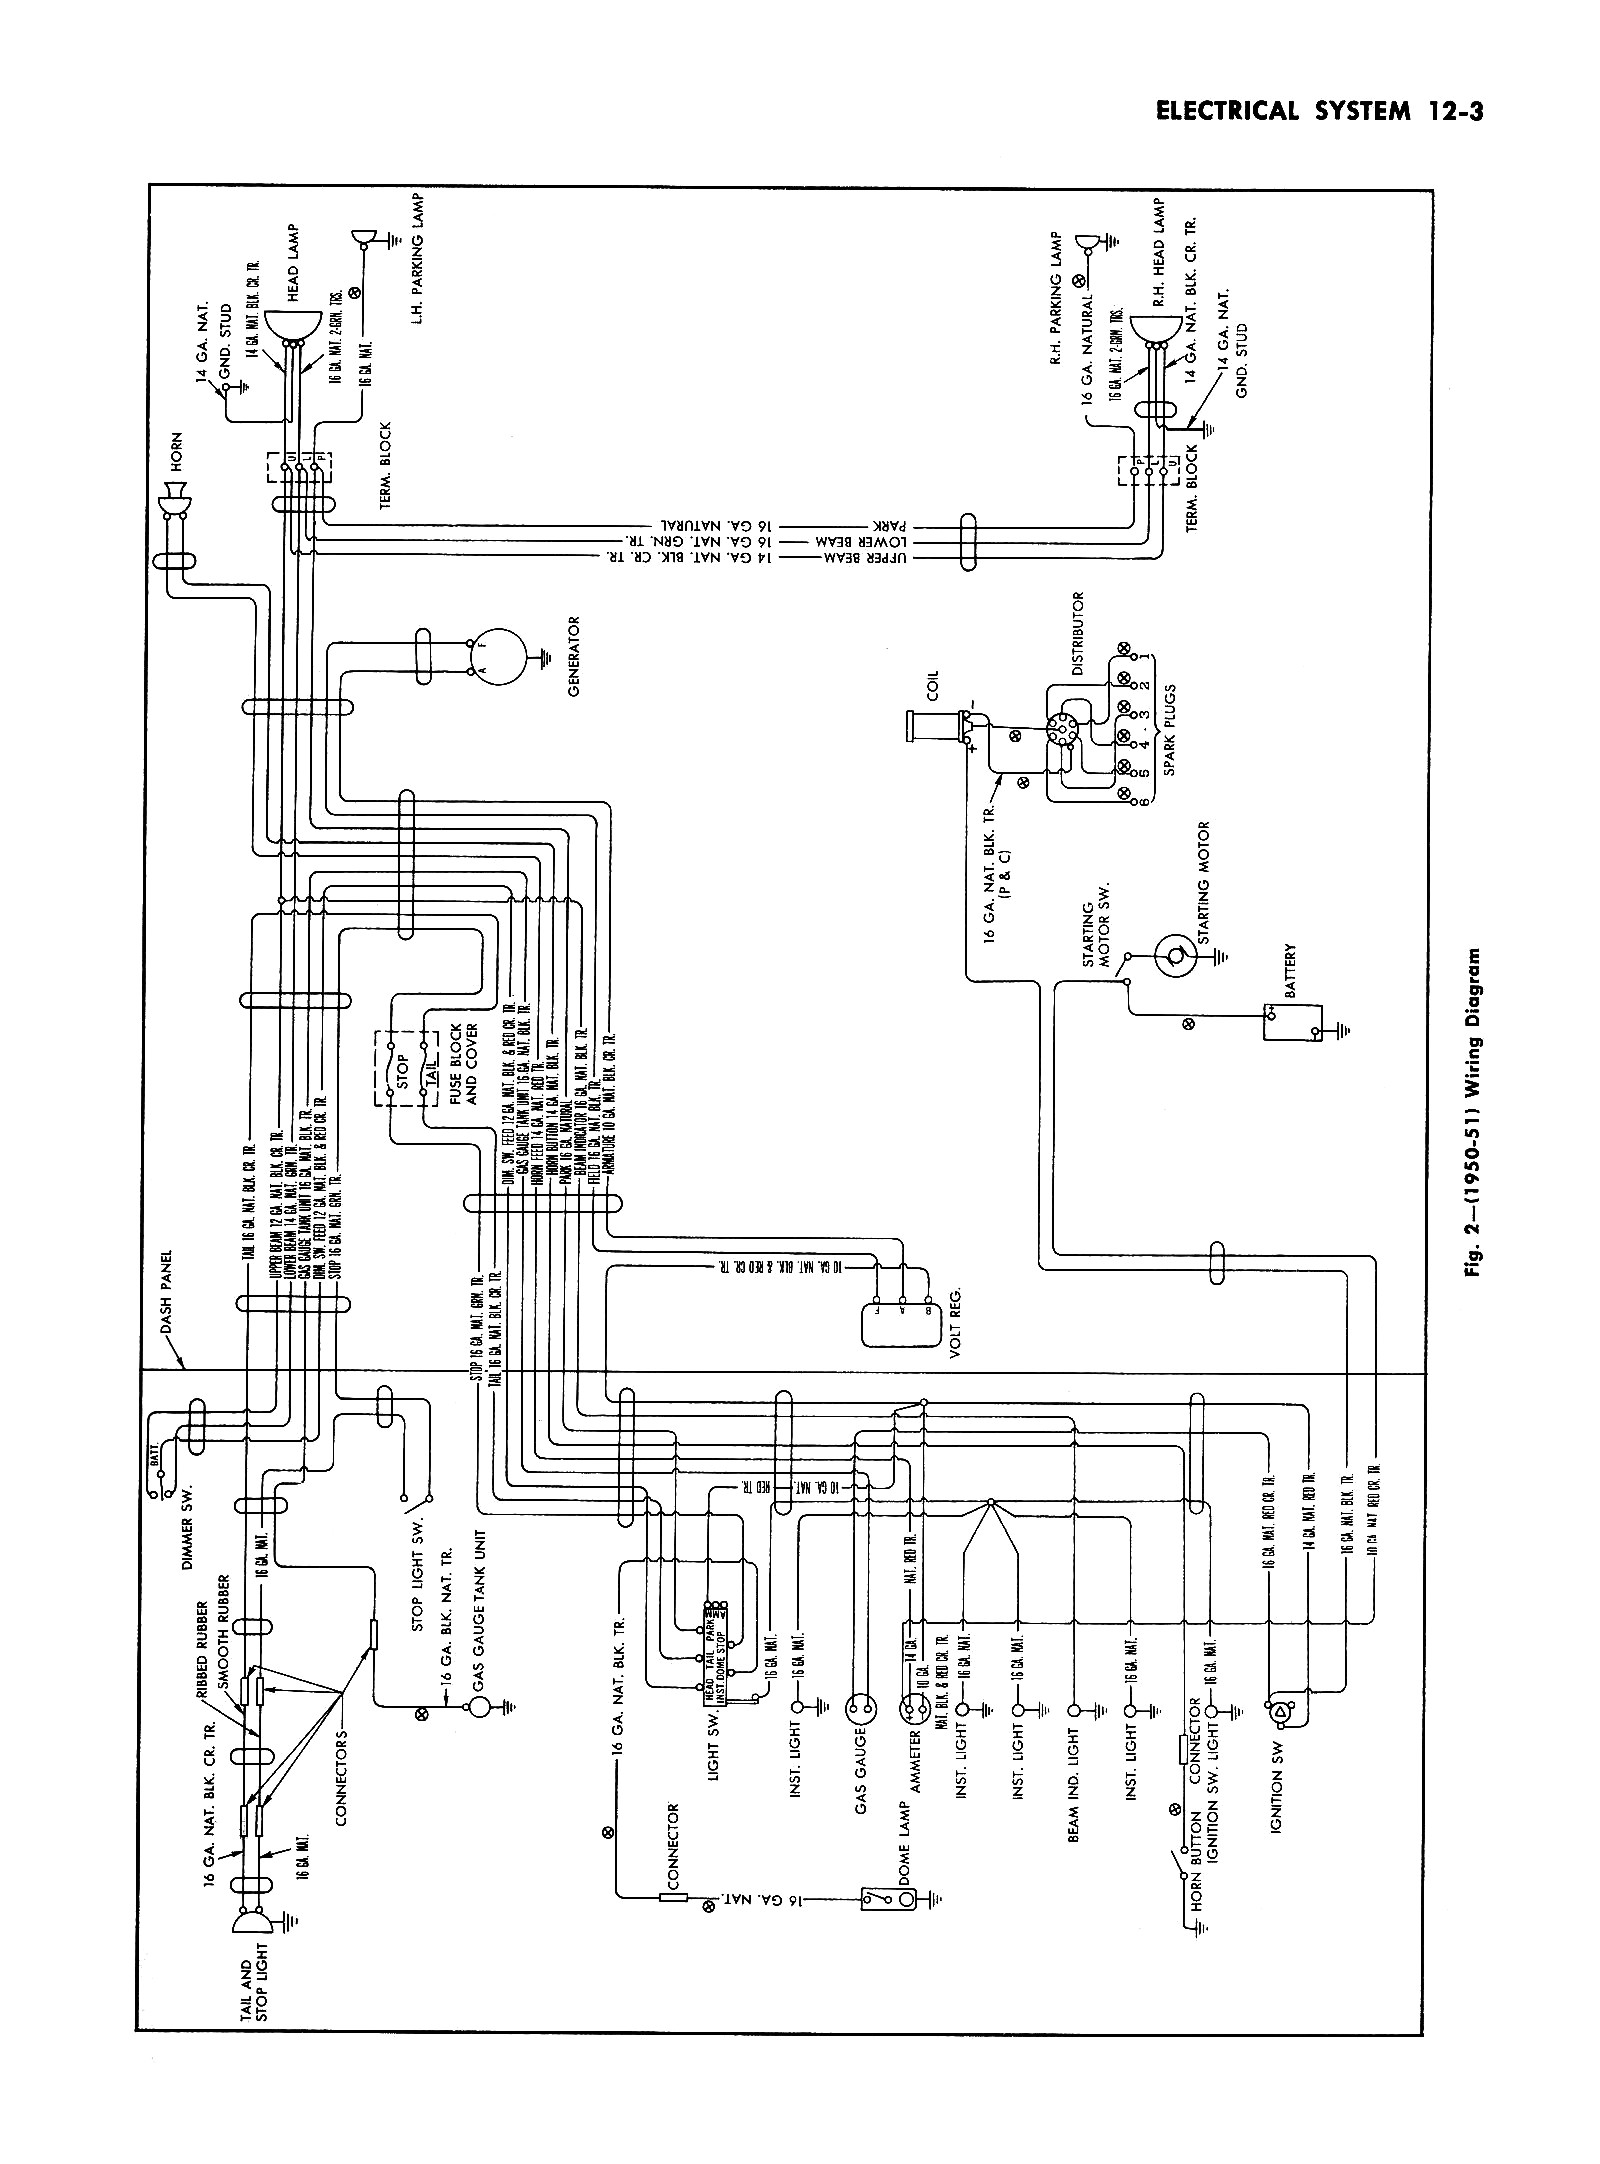 ron francis wiring diagrams neutral safety switch  ron